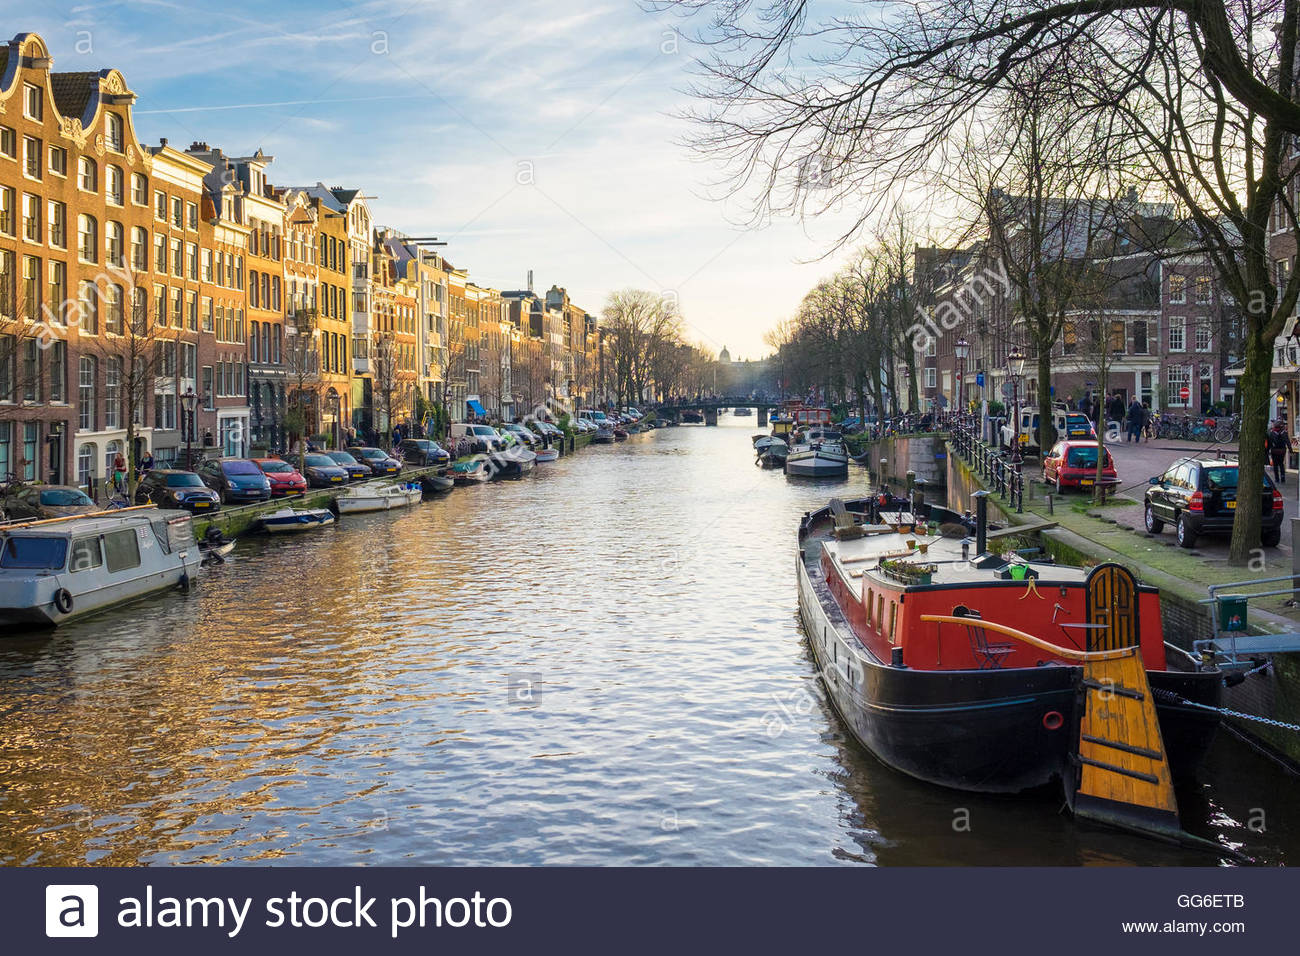 Prinsengracht canal, Amsterdam, North Holland, Netherlands, Europe - Stock Image